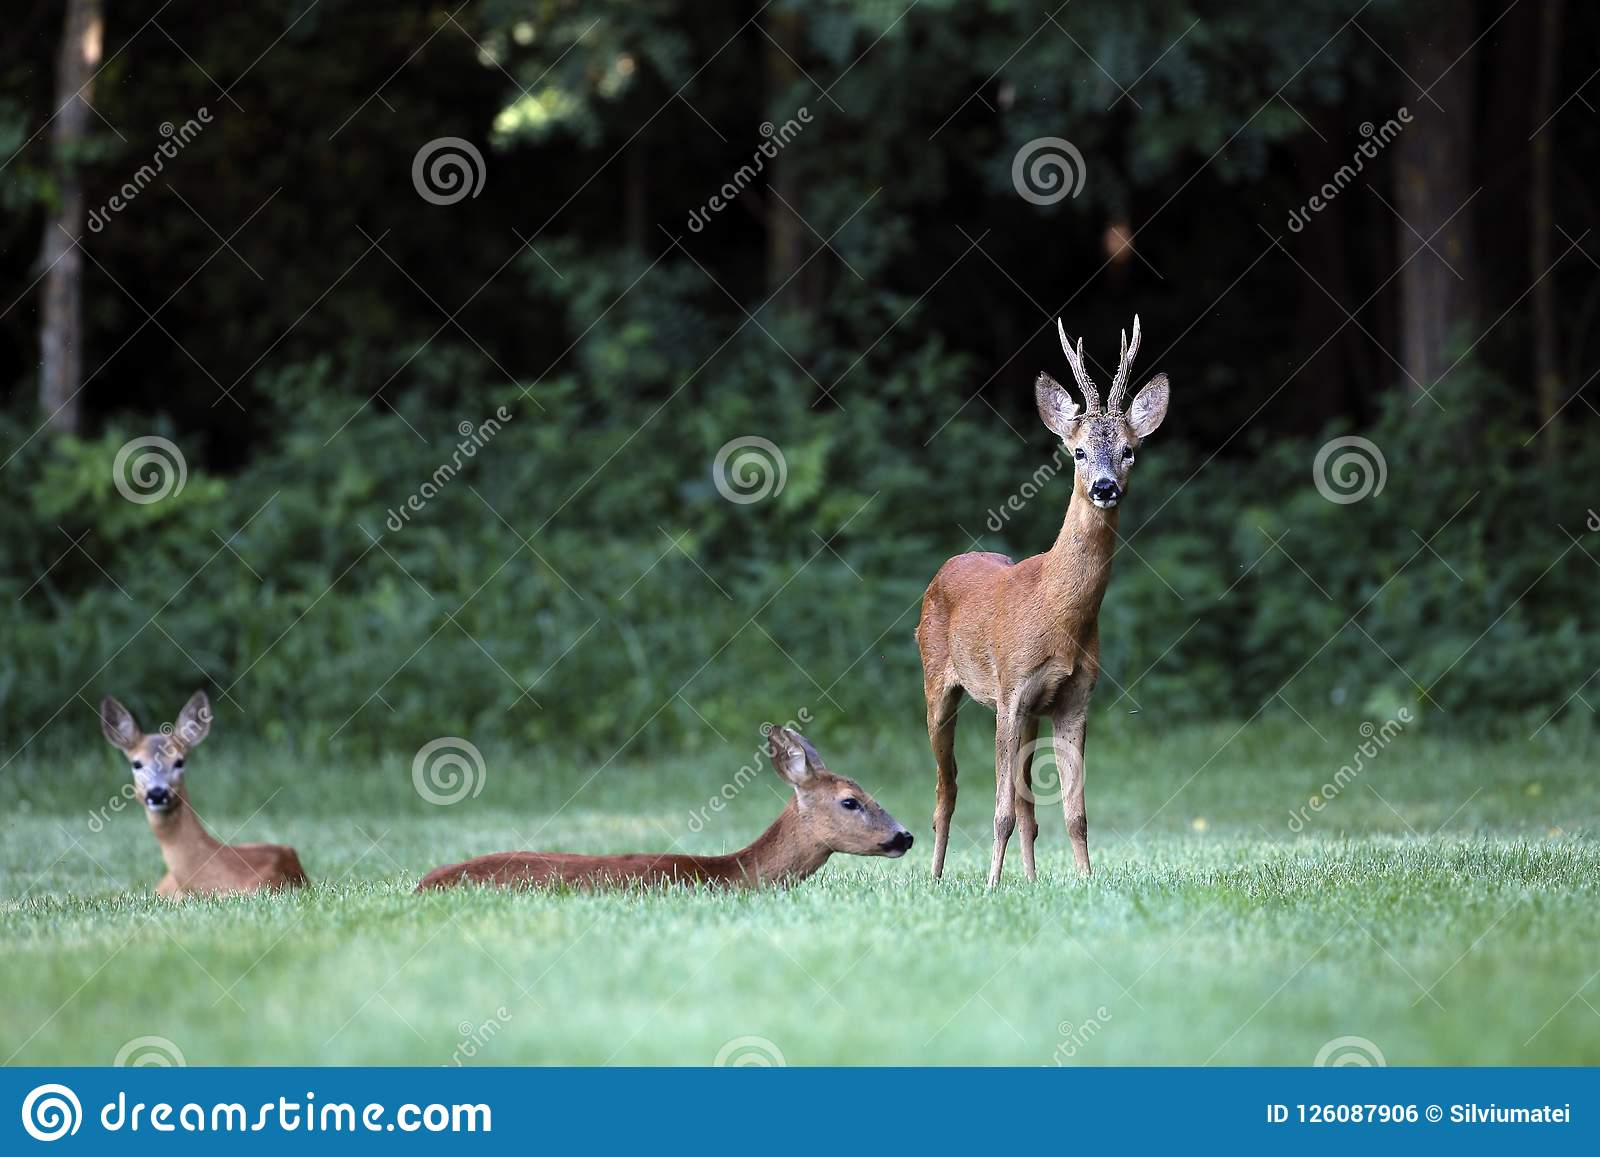 Wild roe deer,male and female standing in a grass field